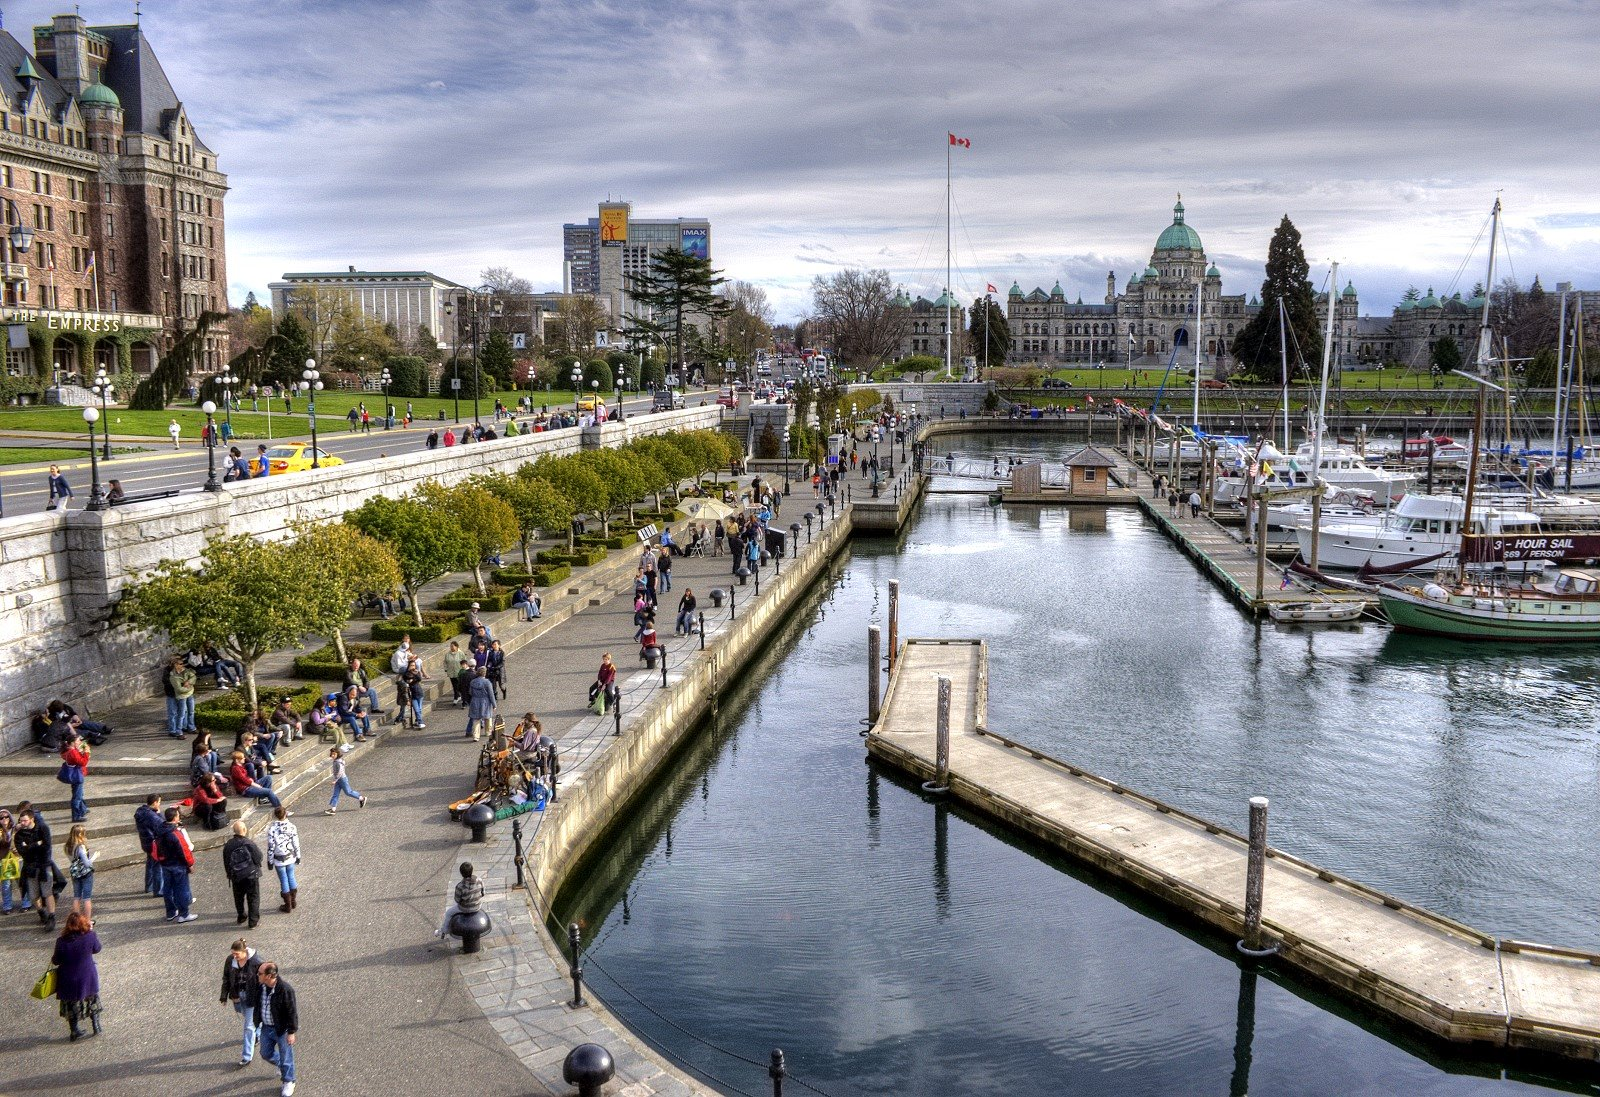 Victoria B C Inner Harbour Voted One Of The Top 10 Vacation Spots By Conde Neste Magazine